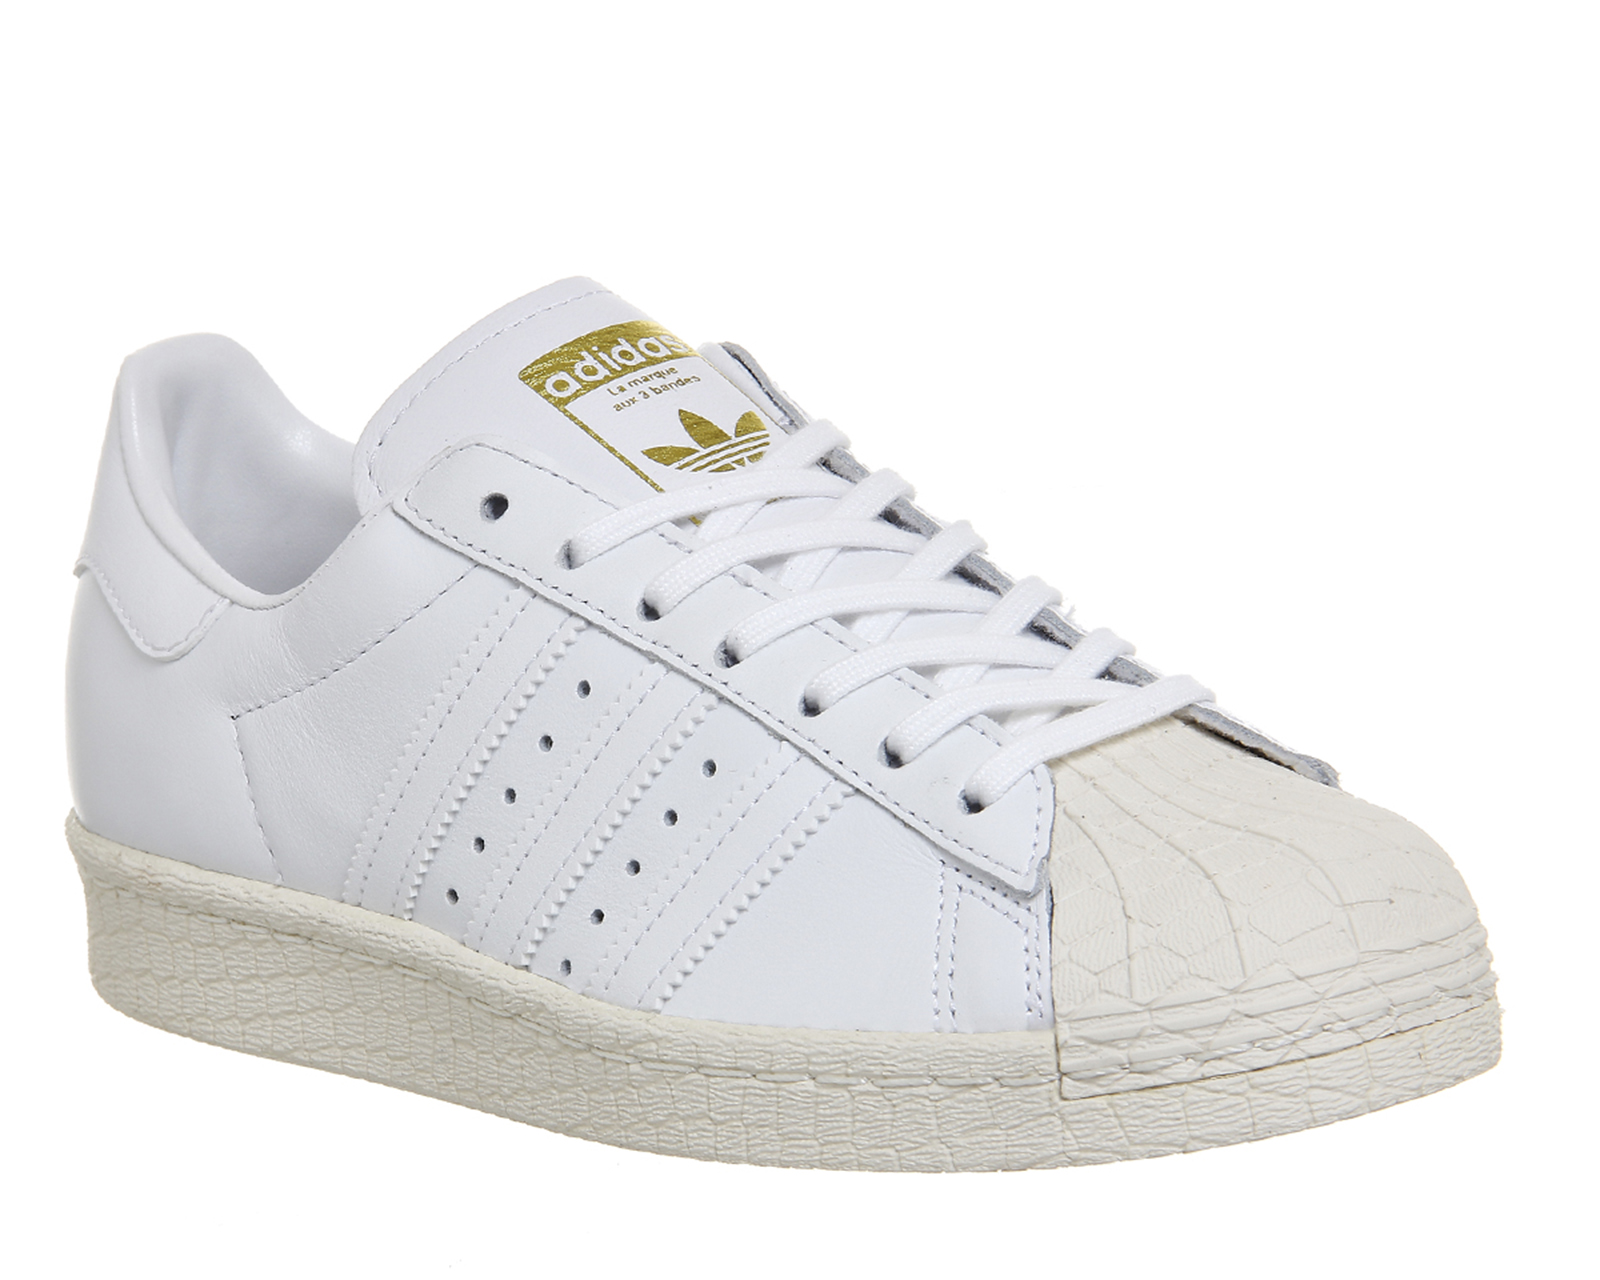 womens adidas superstar 80s white off white trainers shoes. Black Bedroom Furniture Sets. Home Design Ideas